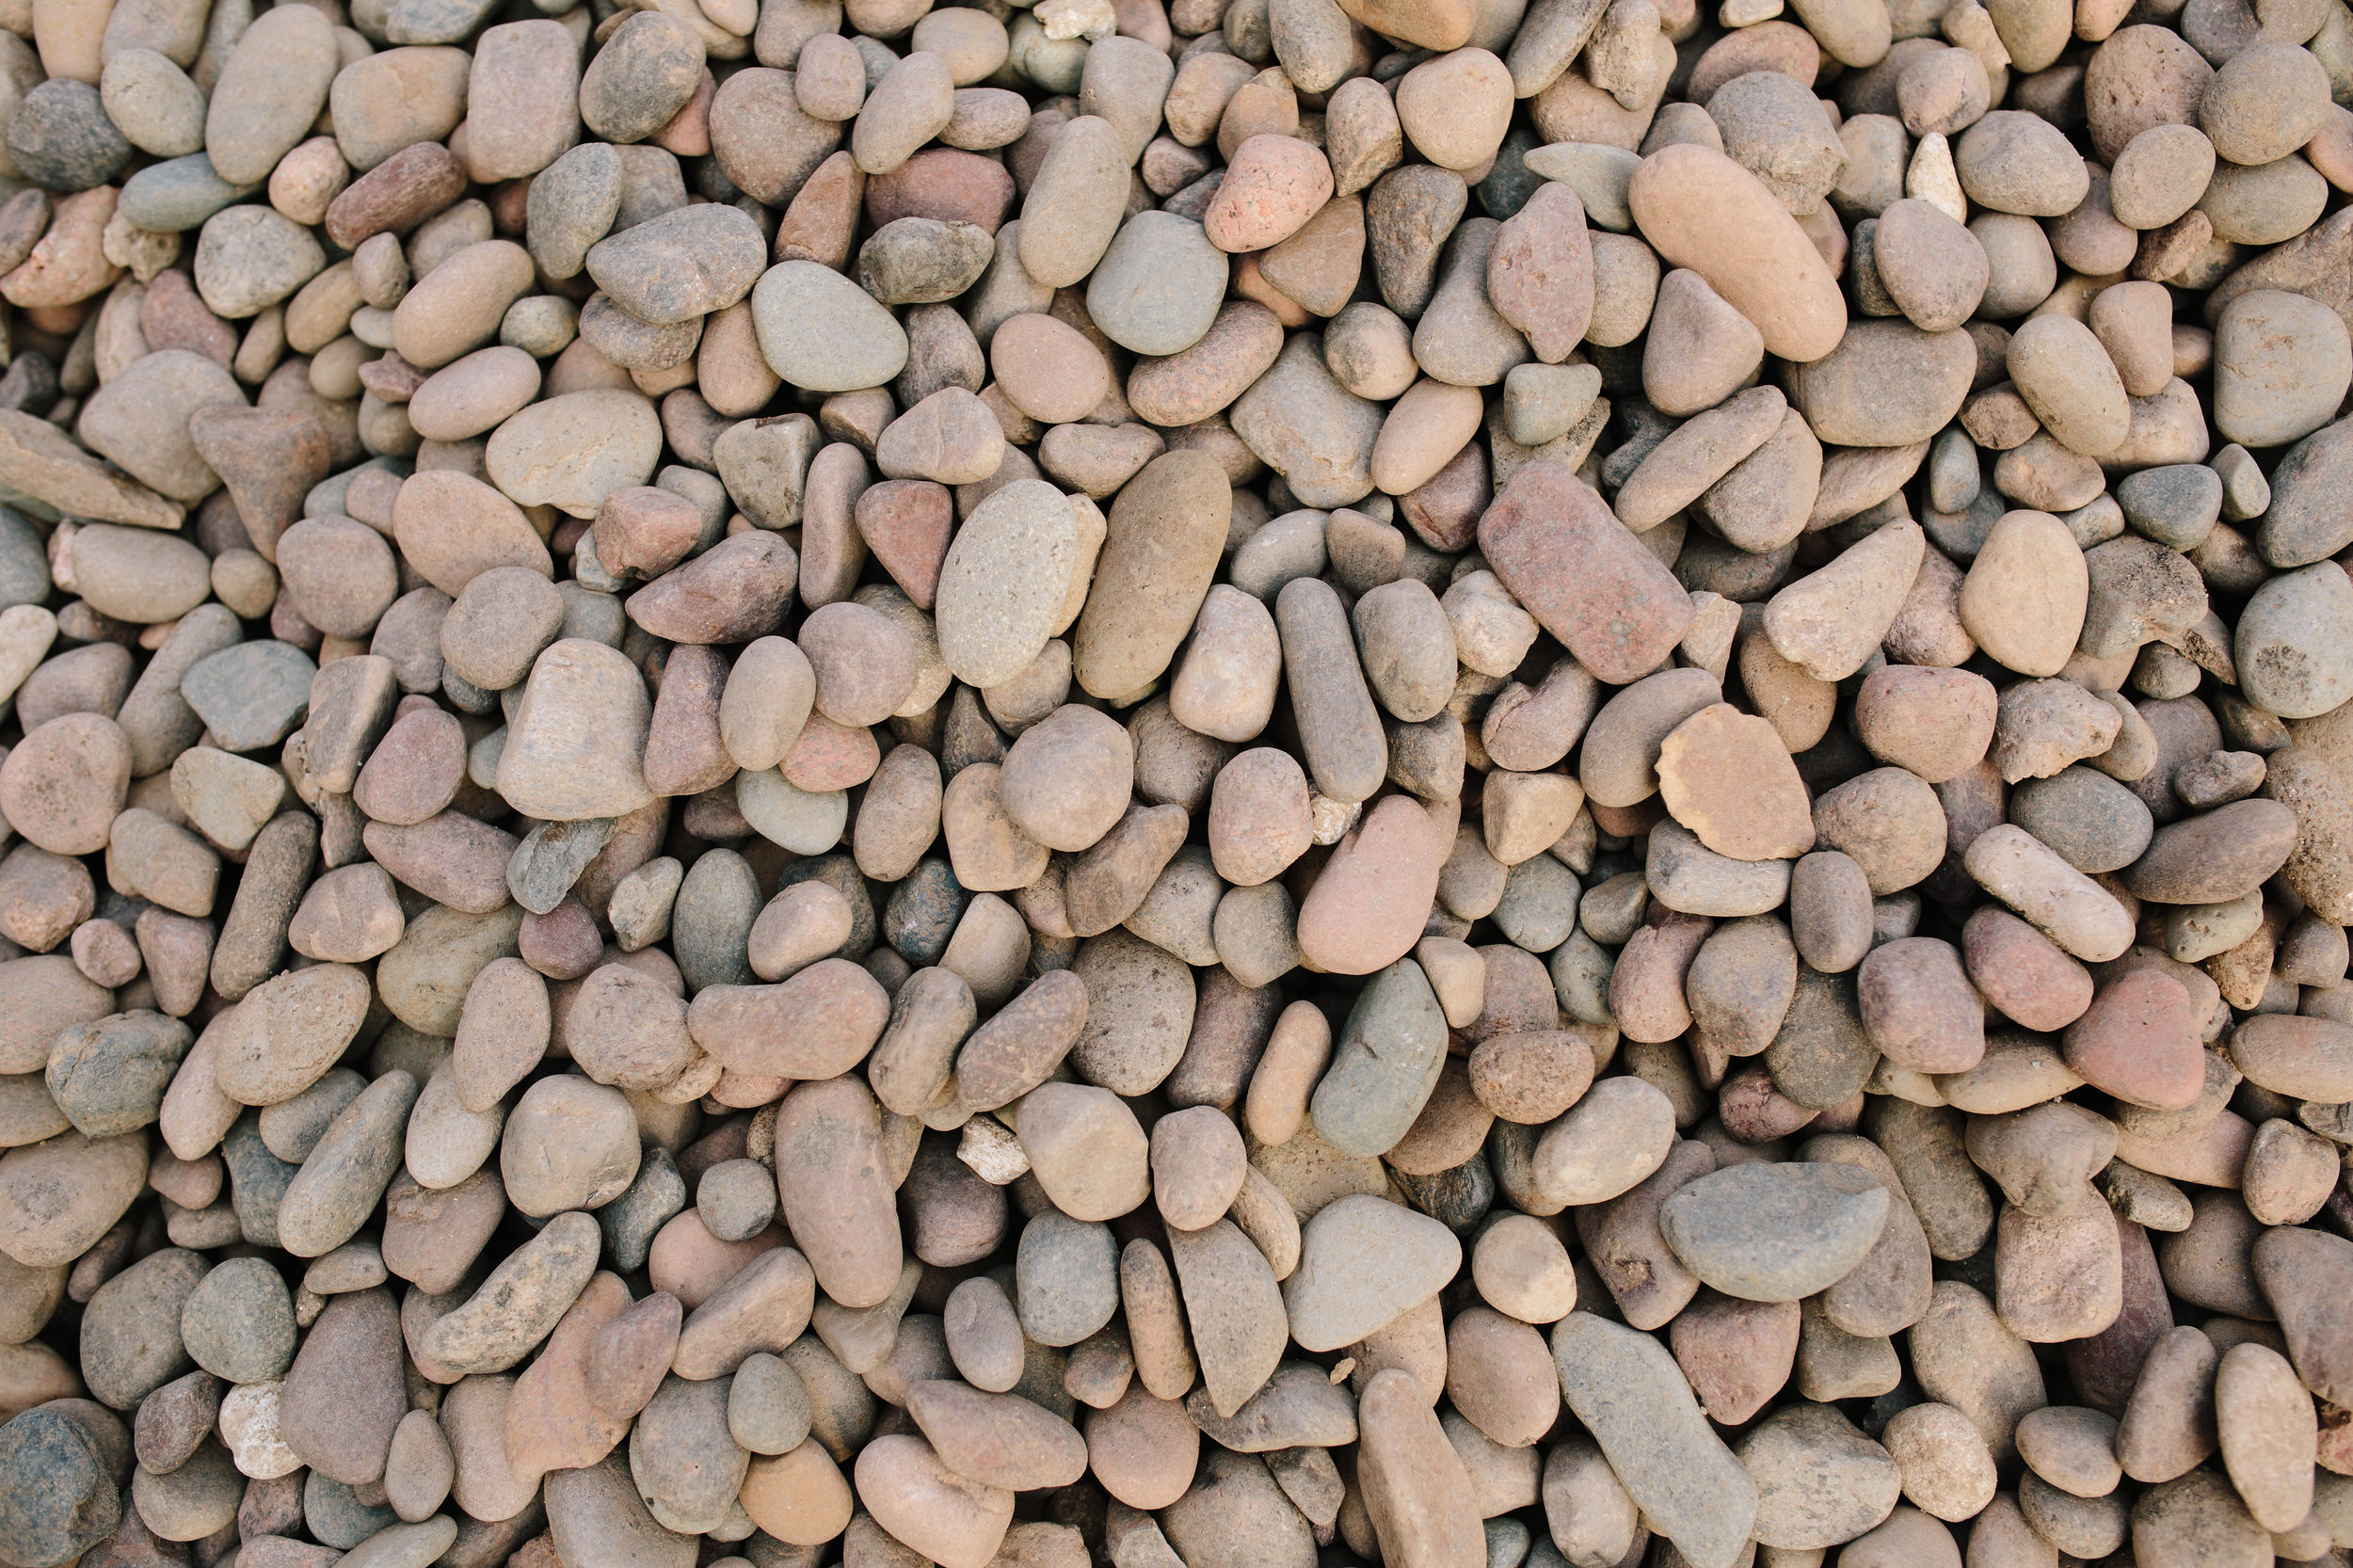 "Rock Products   Birdseye, Pea Gravel, 5/16"" Chip, #2 Gravel, #3 Gravel, #4 Gravel, #67 Rock, Rip Rap, 3/8"" Crushed, 1/2"" Crushed, 3/4"" Crushed, 1"" Crushed, 1 1/2"" Crushed, 3"" Minus, 6"" Minus, Screened DG, 3/4"" California Gold, 3/4""-1"" Arizona River Rock, 1""-3"" Arizona River Rock, #5 Gravel"